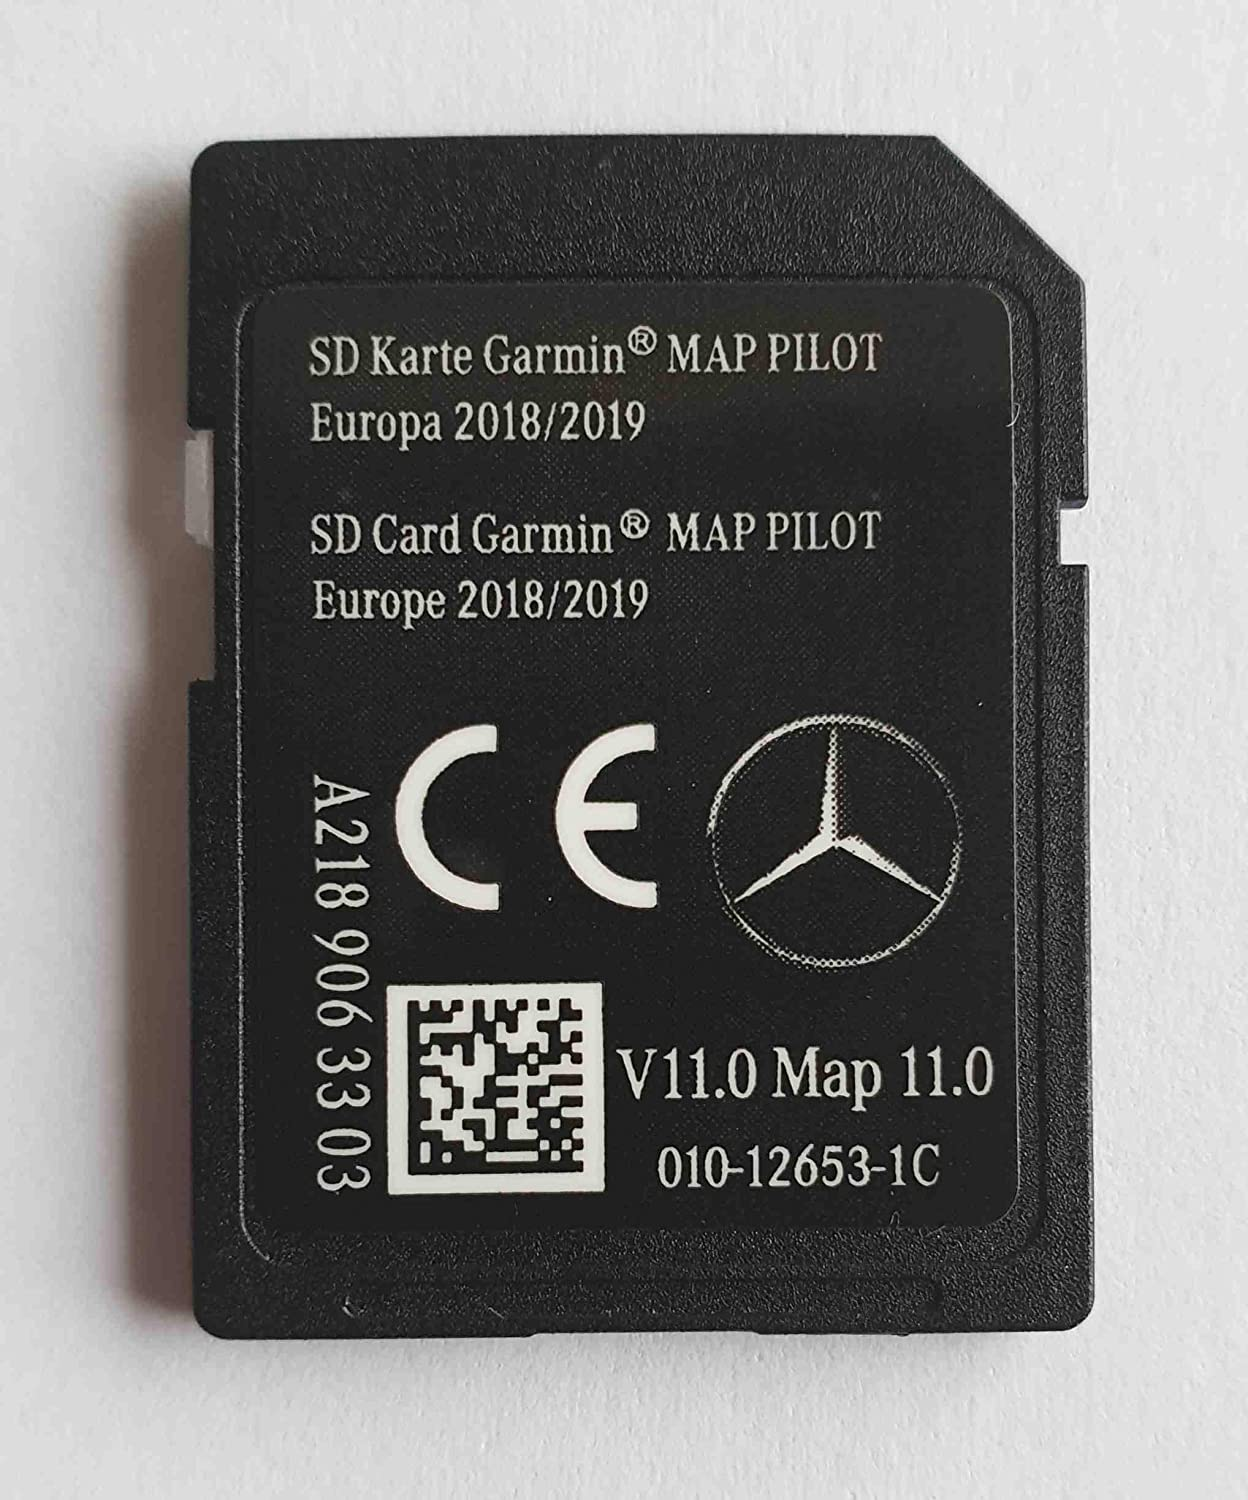 SD Karte Mercedes Garmin Map Pilot STAR1 v11 Europe 2018-2019 - A2189063303